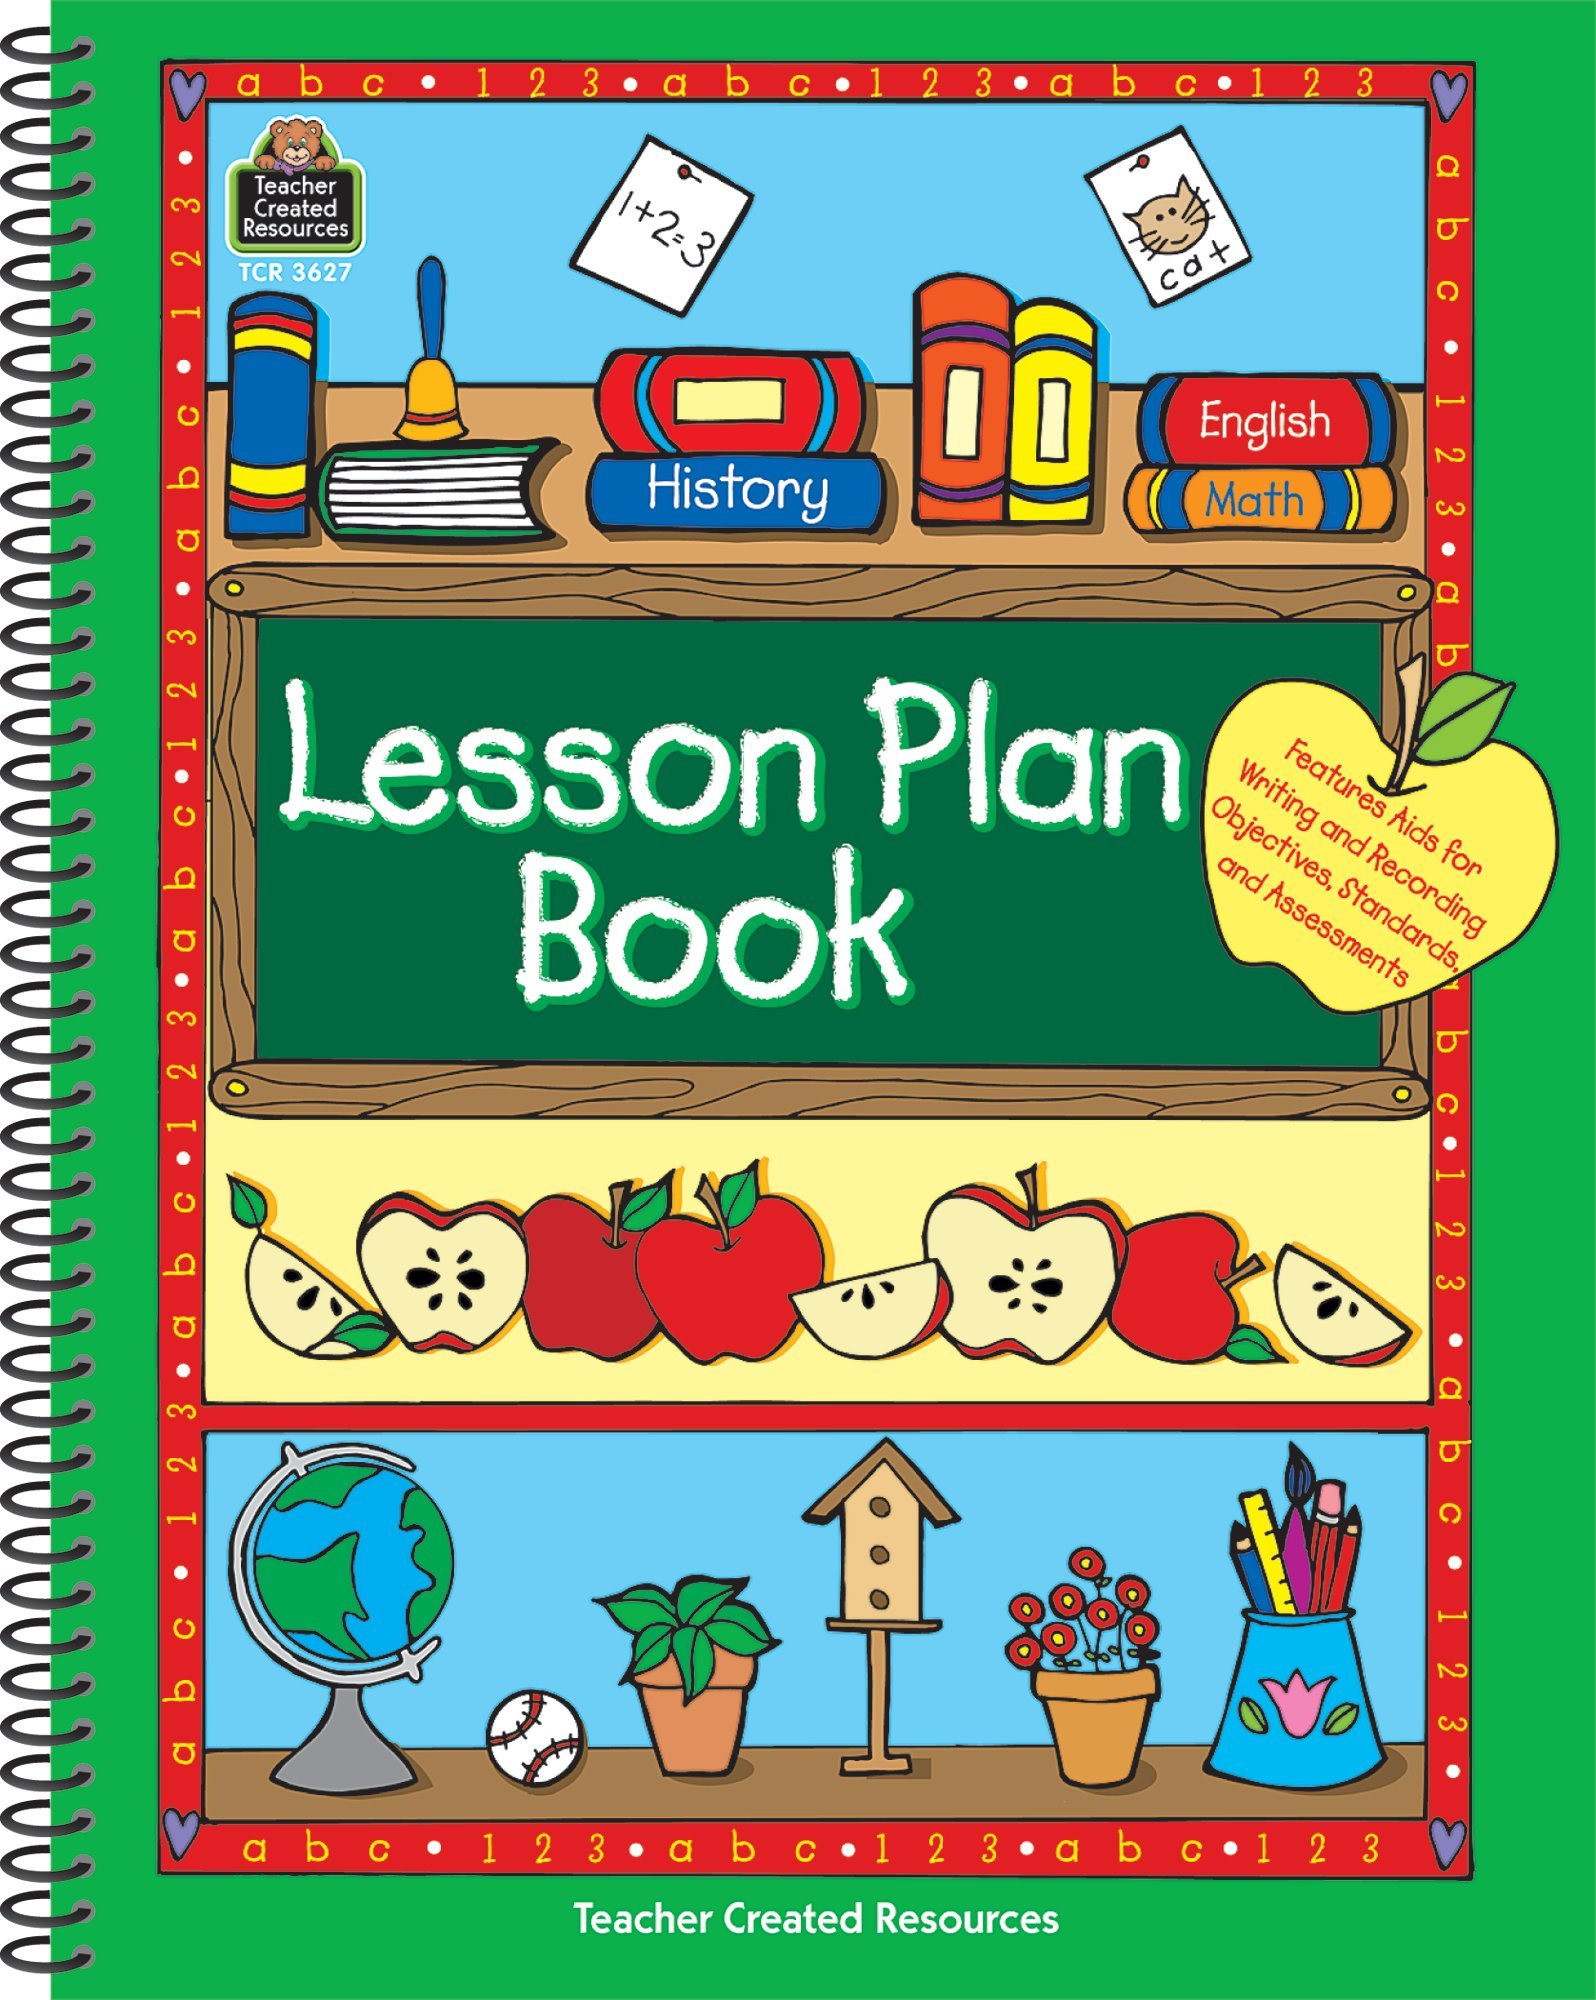 Lesson Plan Book Spiral-bound – Nov 4 2004 Gehrke Teacher Created Resources 0743936272 TCM3627